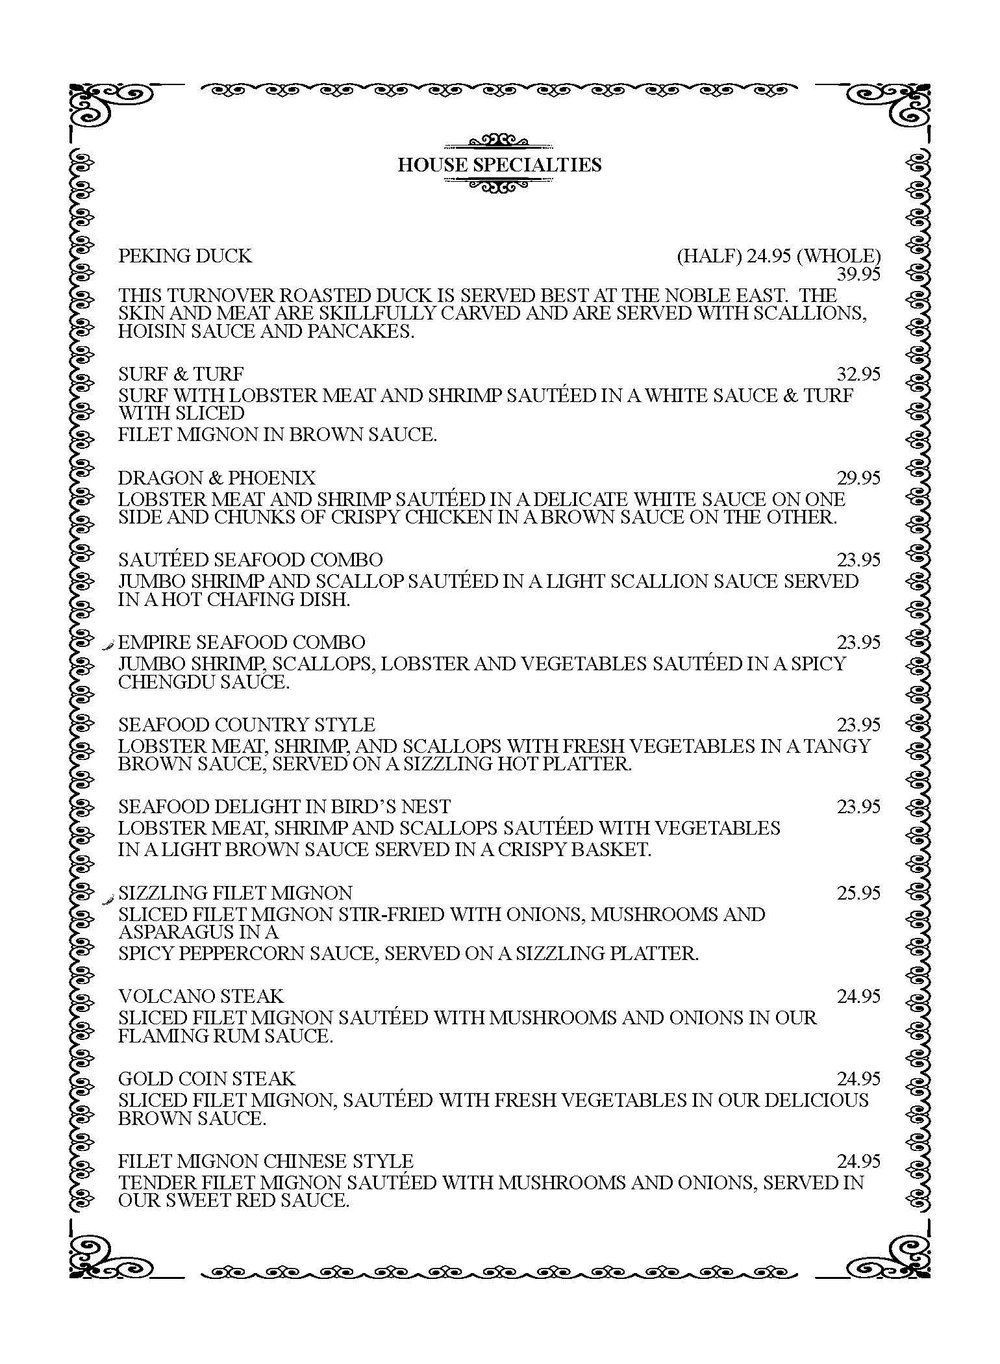 NOBLE EAST DINE IN MENU FOR AMY WEBSITE_Page_05.jpg